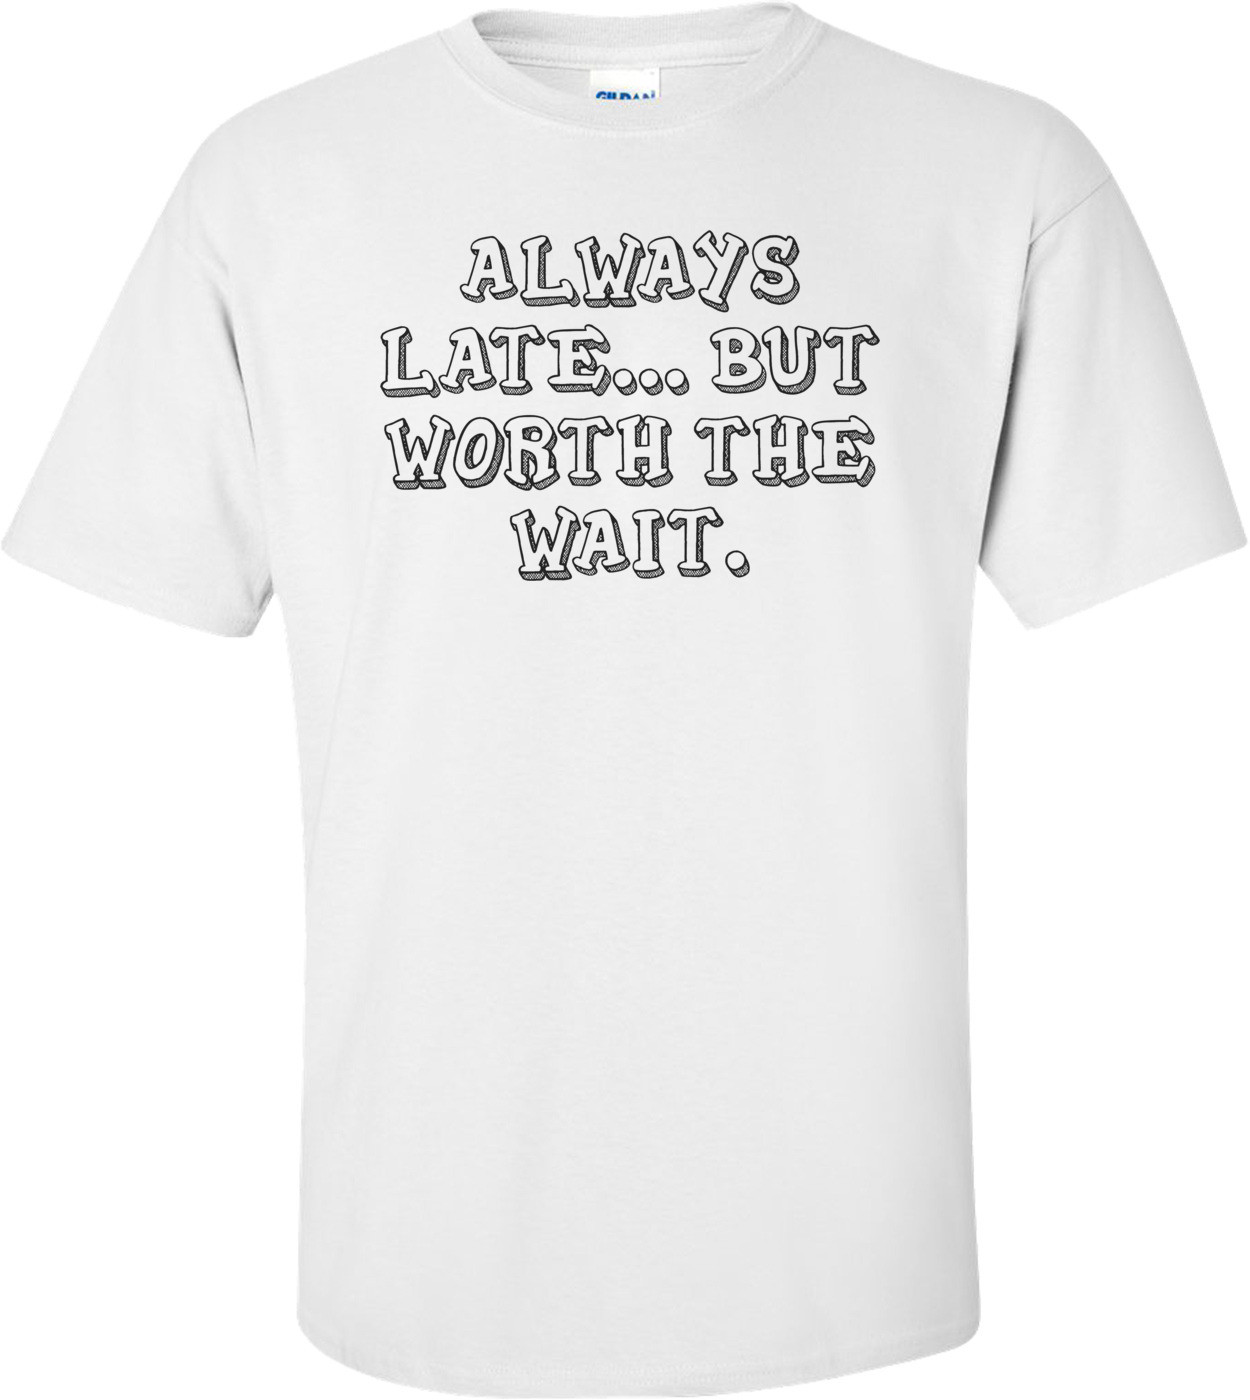 ALWAYS LATE... BUT WORTH THE WAIT. Shirt